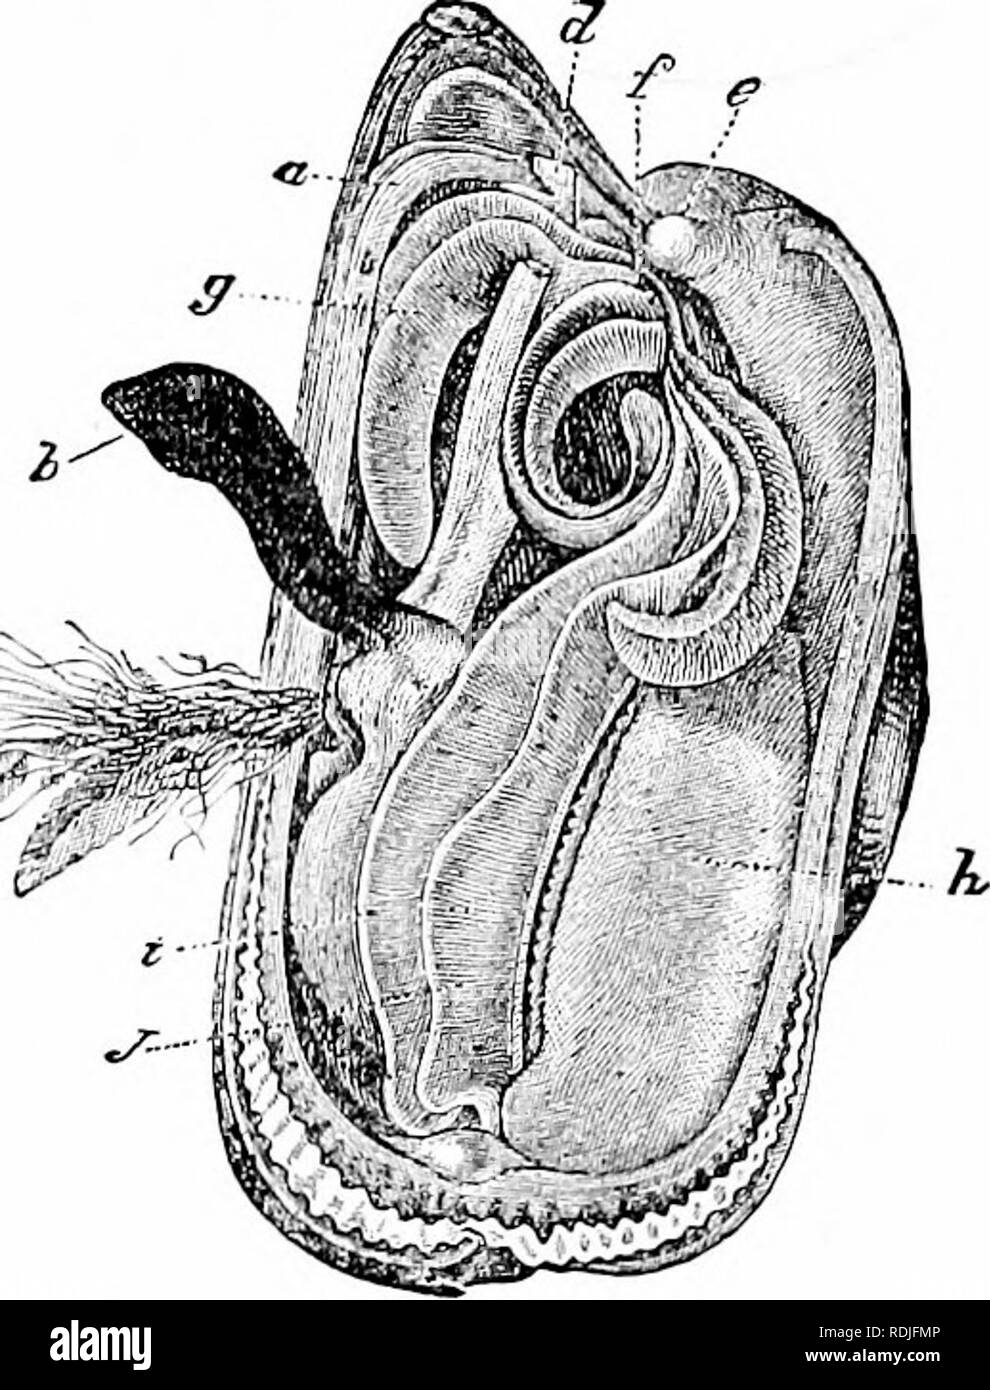 . A manual of zoology. Zoology. FlG. Fig. 323. no. 324. Fig. 323.âProjection of section through foot and heart of lig. 322. h &^, upper and lower limbs of nephridium; d, intestine; c, nephridiopore; /Â«, foot; g, gonad; A', ventricle surrounding the intestine; h', auricle; /;â ', k-, inner and outer gill lamellae; I, hinge hgament; m, mantle; n, cerebro-visceral commissure; sp, nephrostome; v, venous sinus. Fig. 324.âMytilus edulis* (after Blanchard). a, edge of mantle; J, spinning finger of foot; c, byssus; d, e, retractors of foot;/, mouth; g, labial palpi; h, mantle; i, j, inner and ou - Stock Image